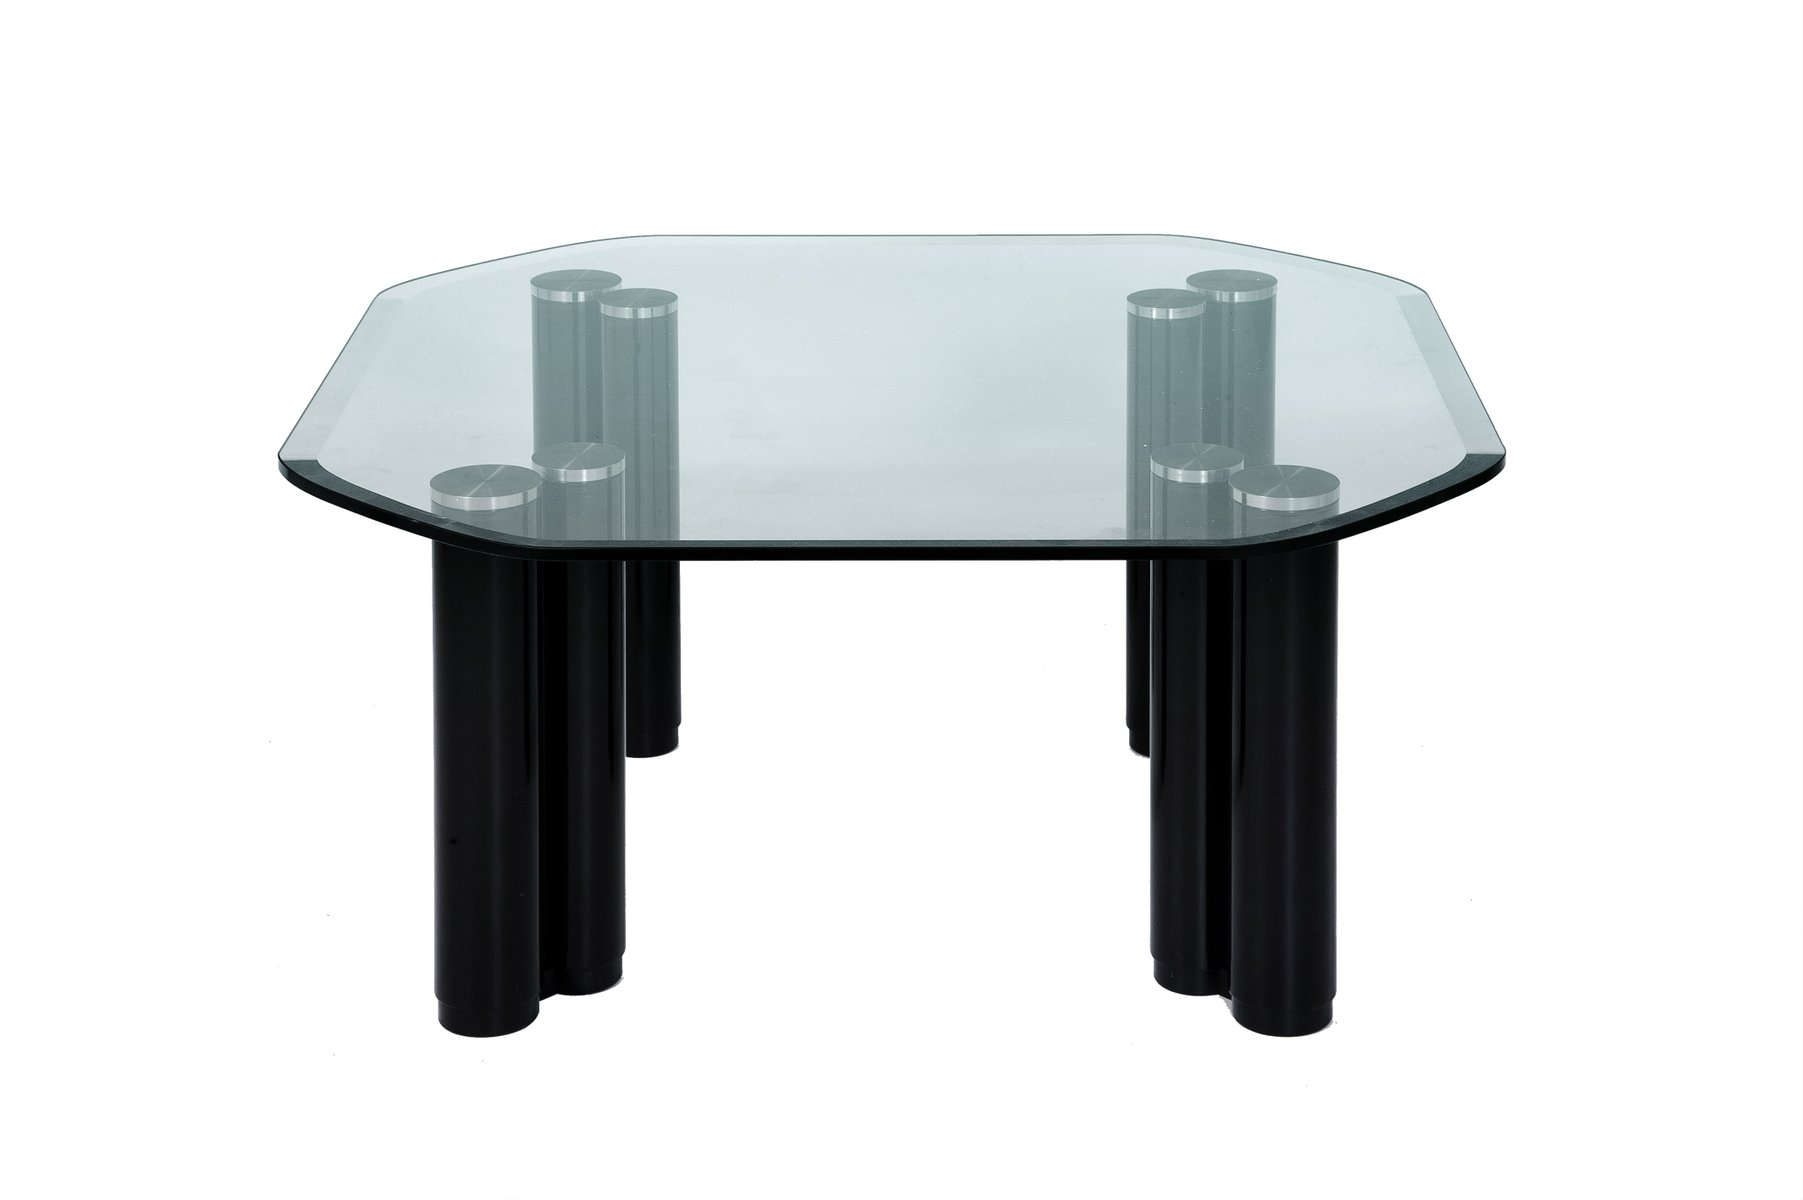 Eta Beta Coffee Table by Marco Zanuso for Zanotta 1977 for sale at